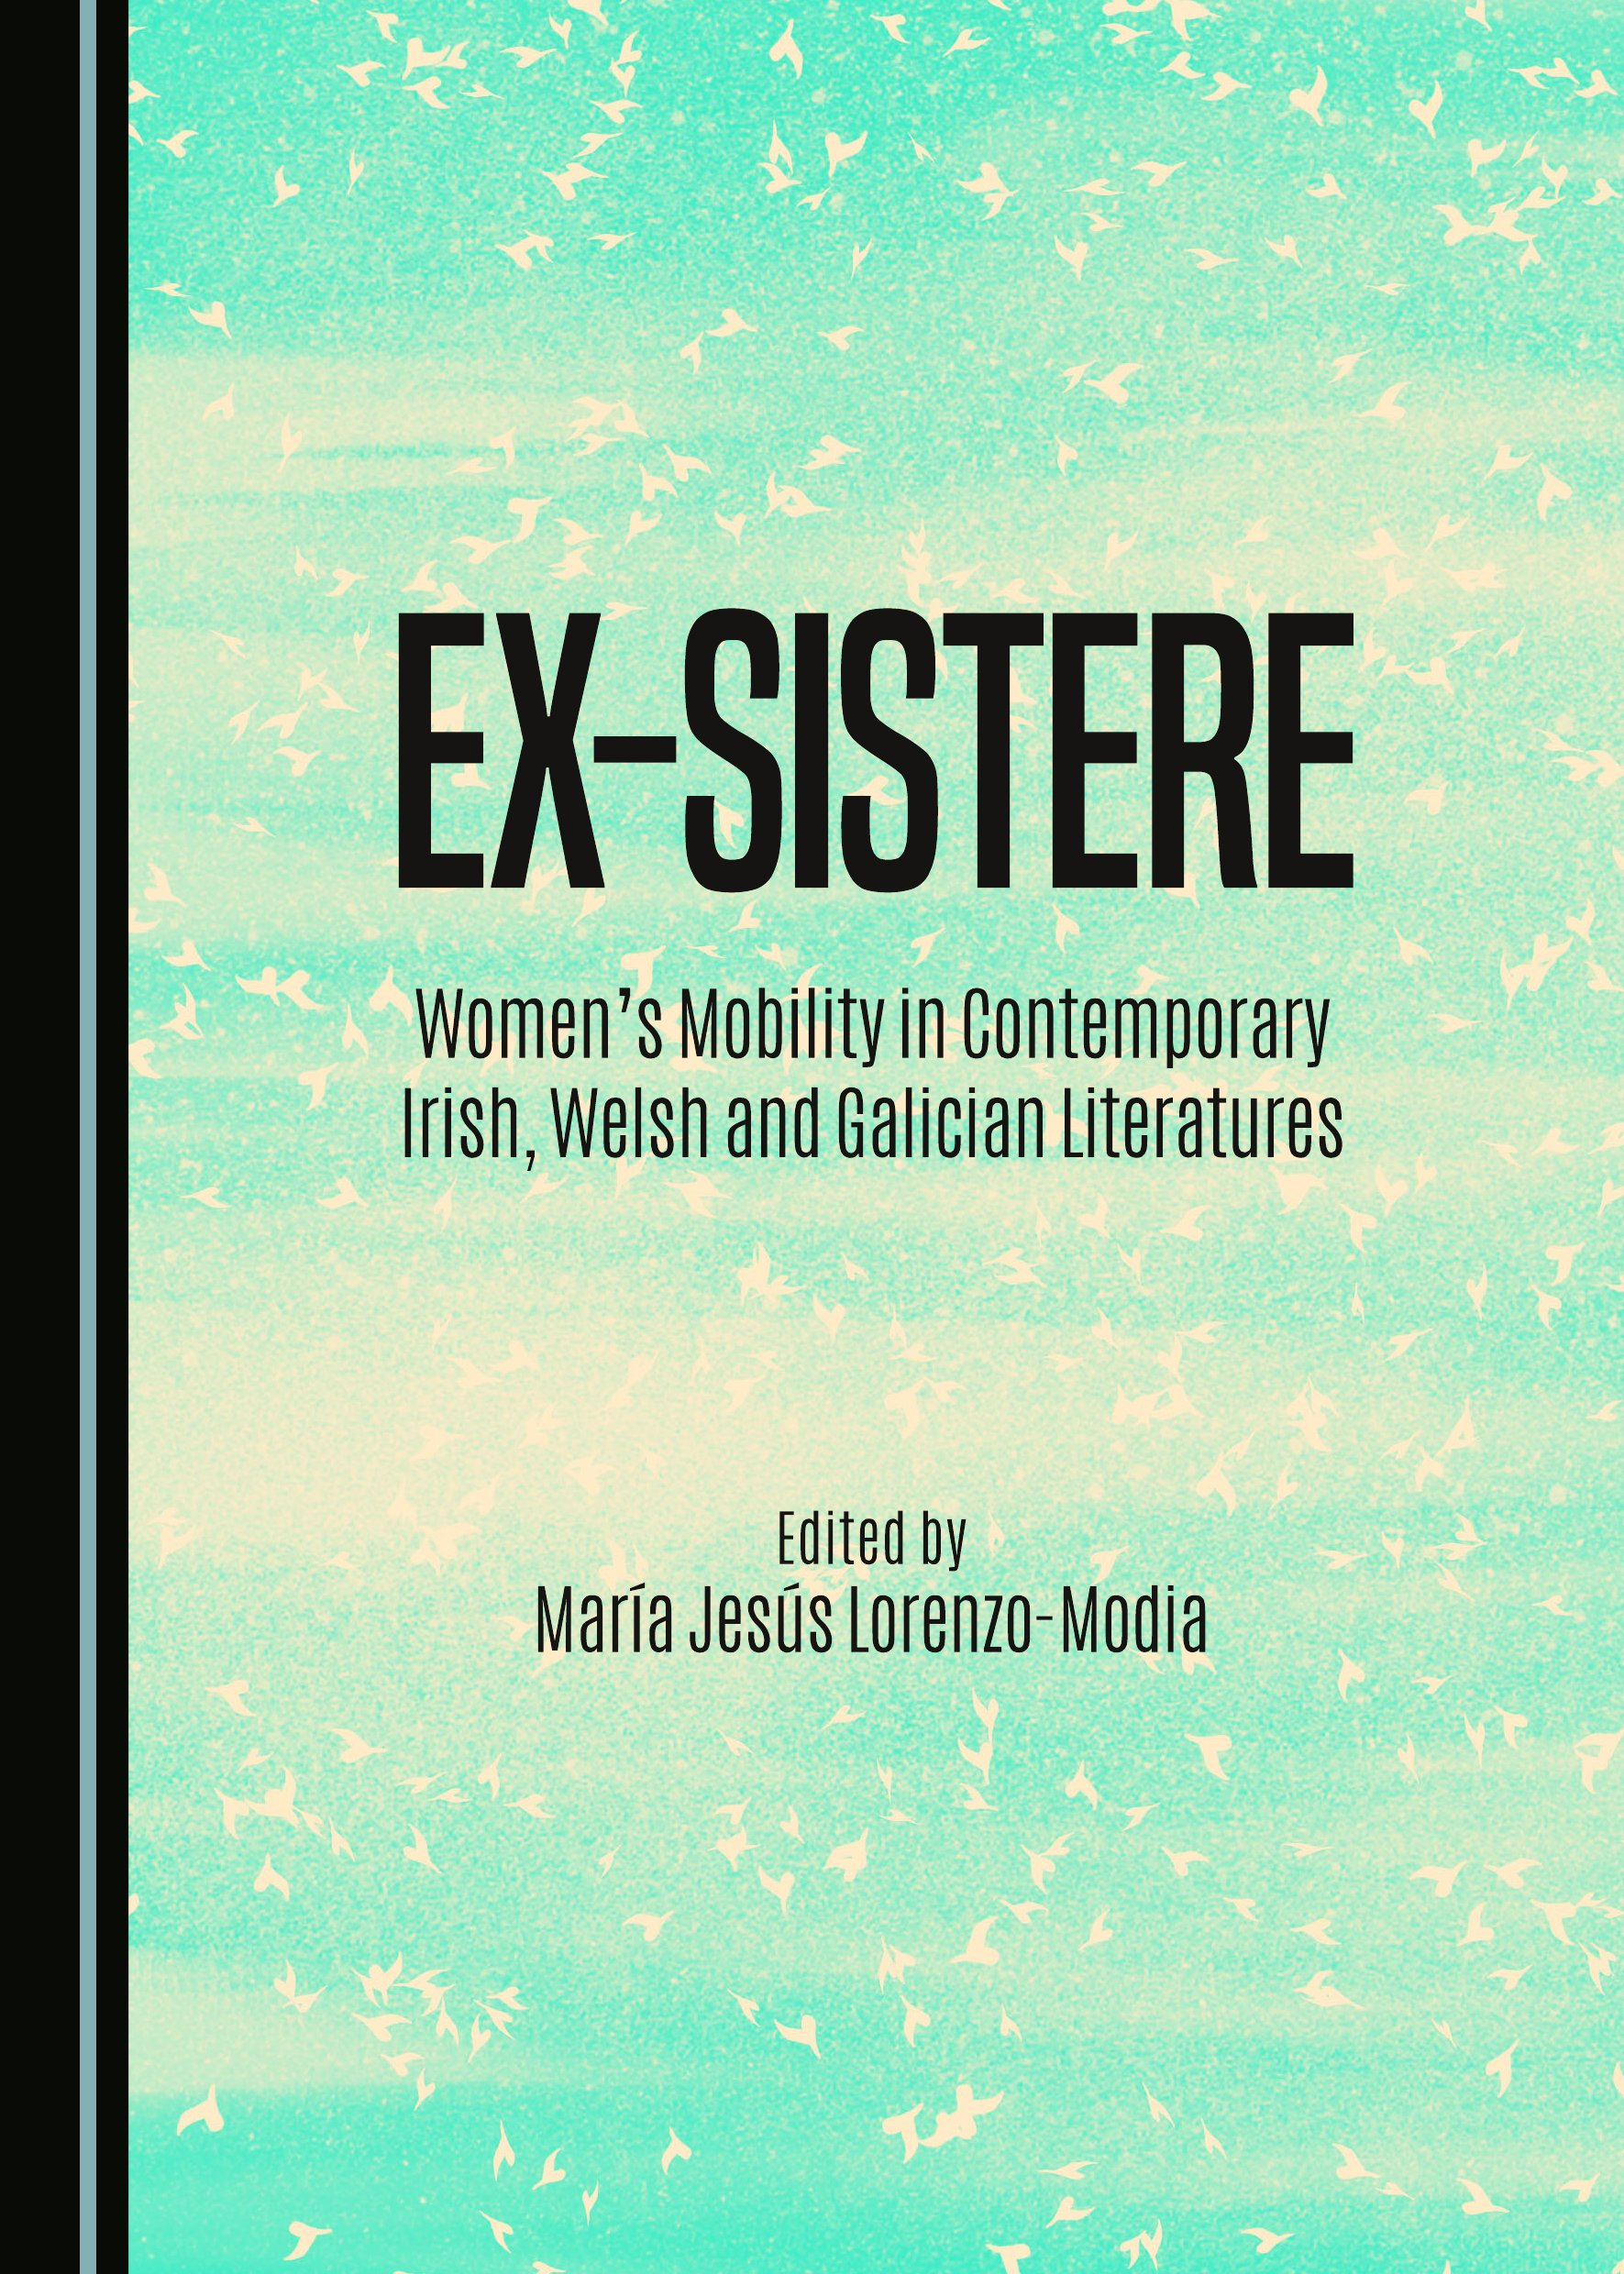 Ex-sistere: Women's Mobility in Contemporary Irish, Welsh and Galician Literatures